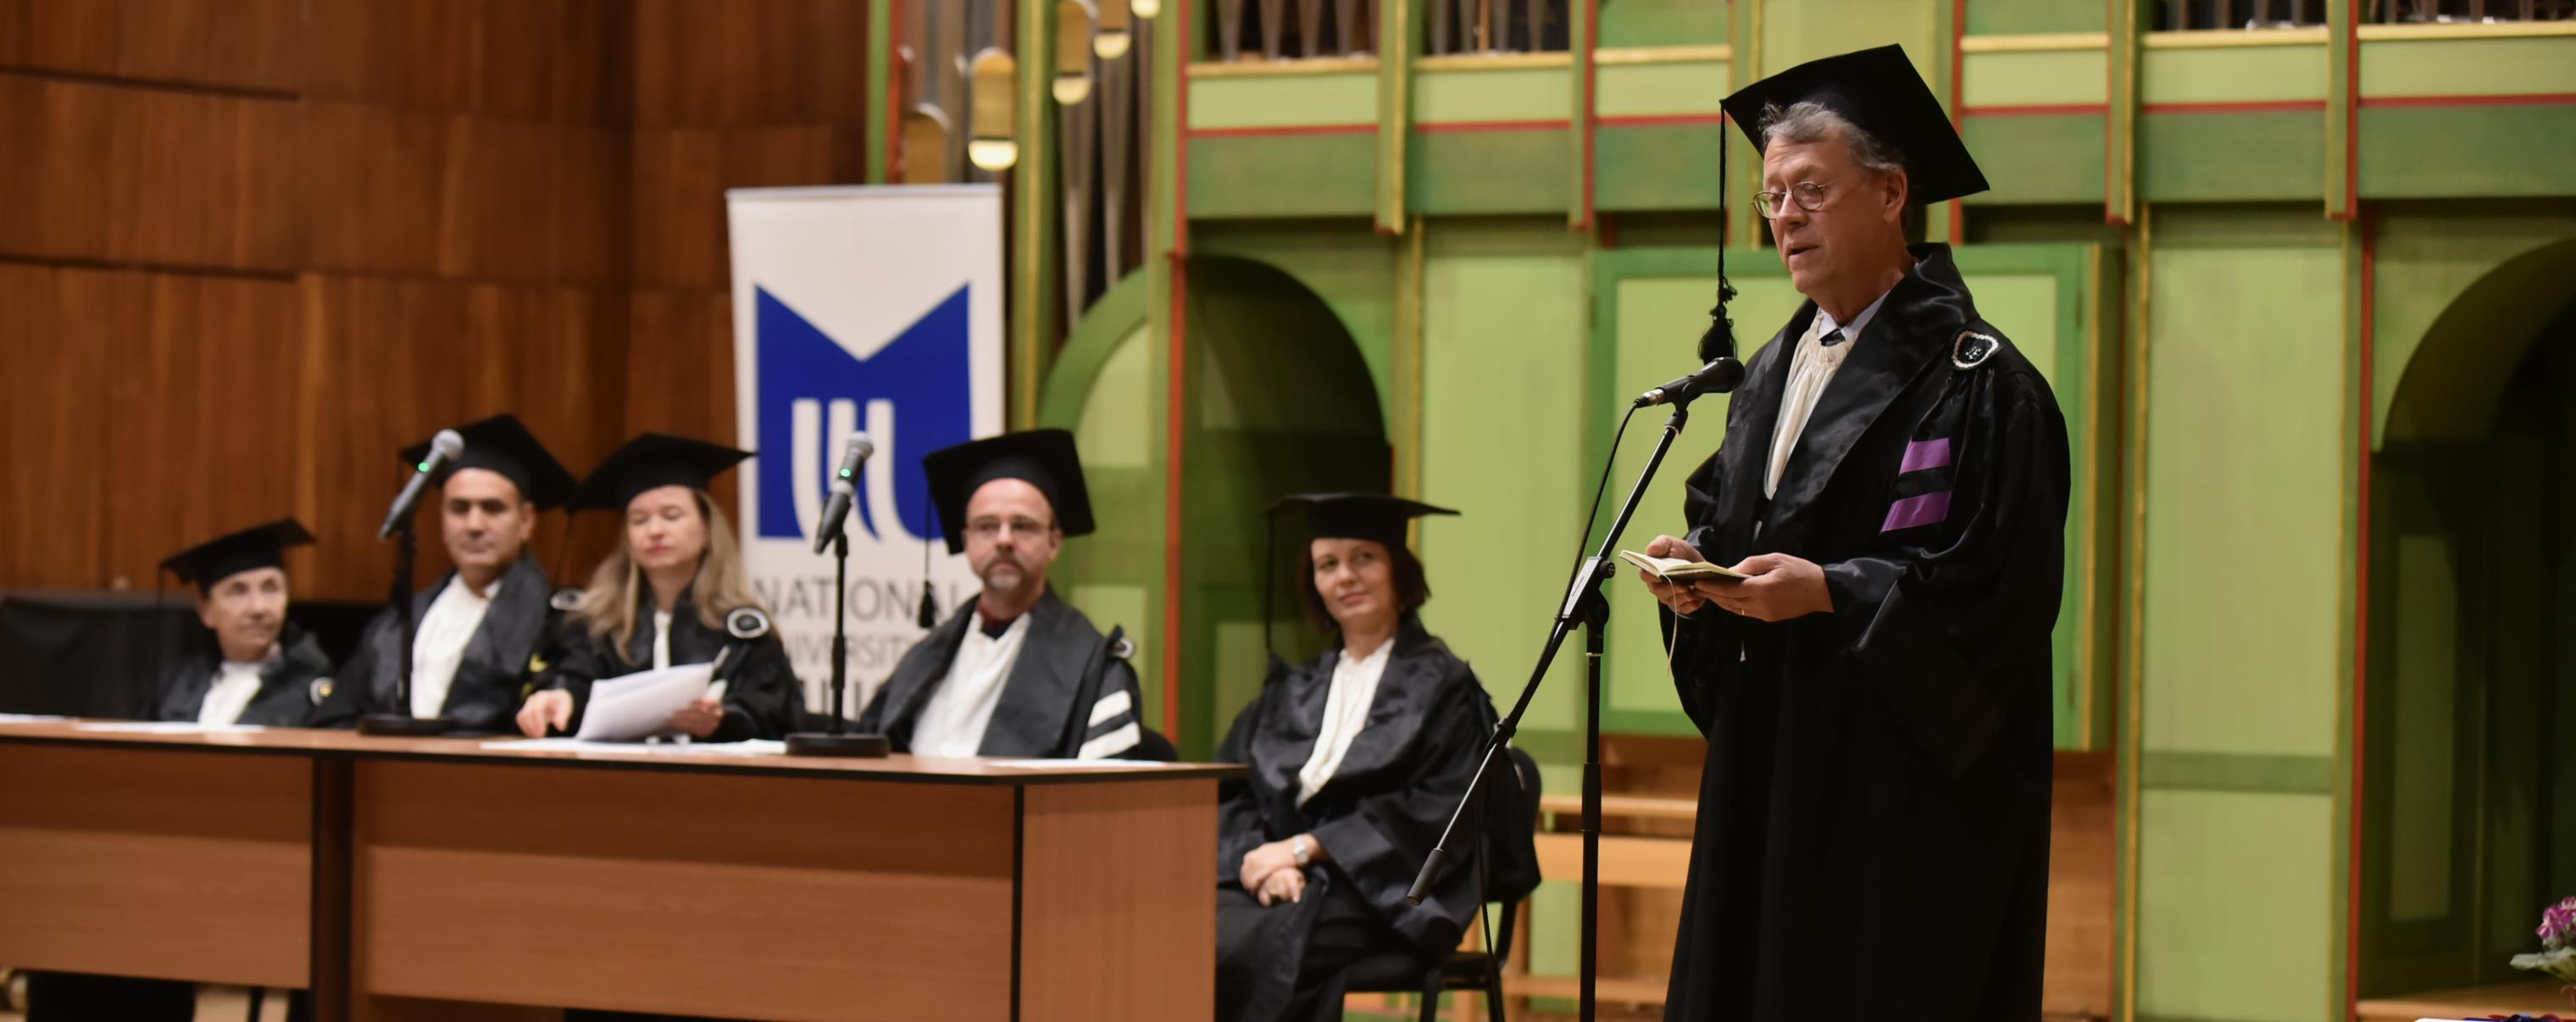 Philip Bohlman delivery acceptance of honorary doctorate at National University for Music Bucharest